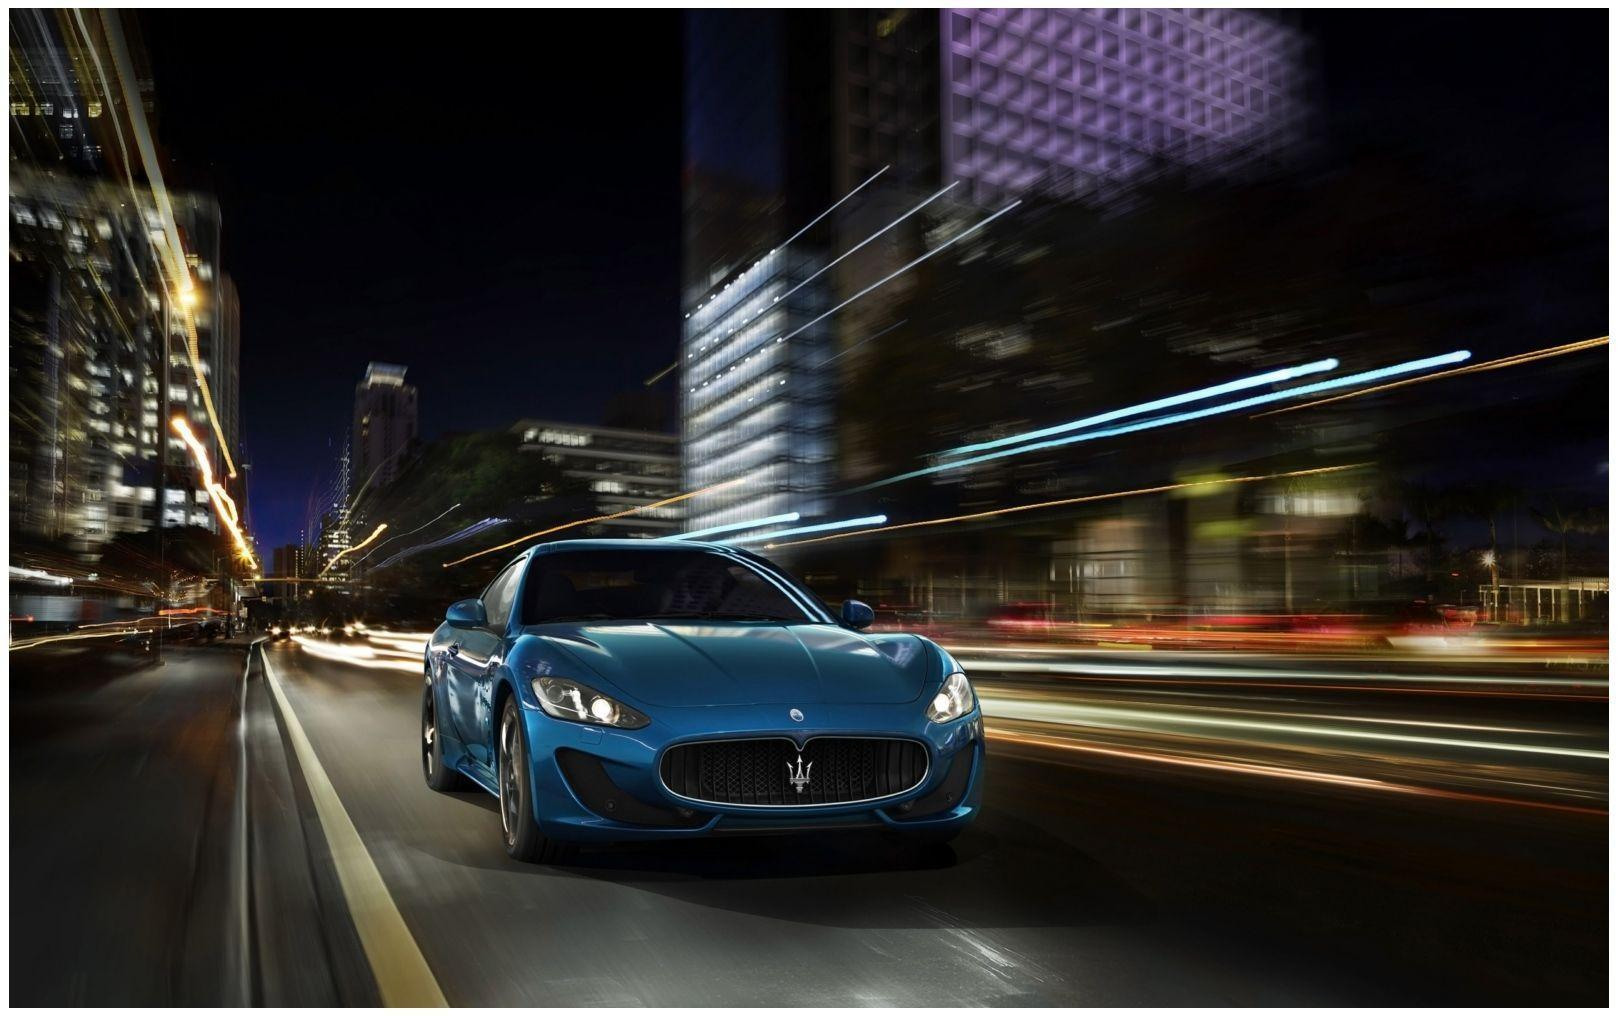 New Maserati Granturismo Hd Wallpaper free | Wallpapers ...